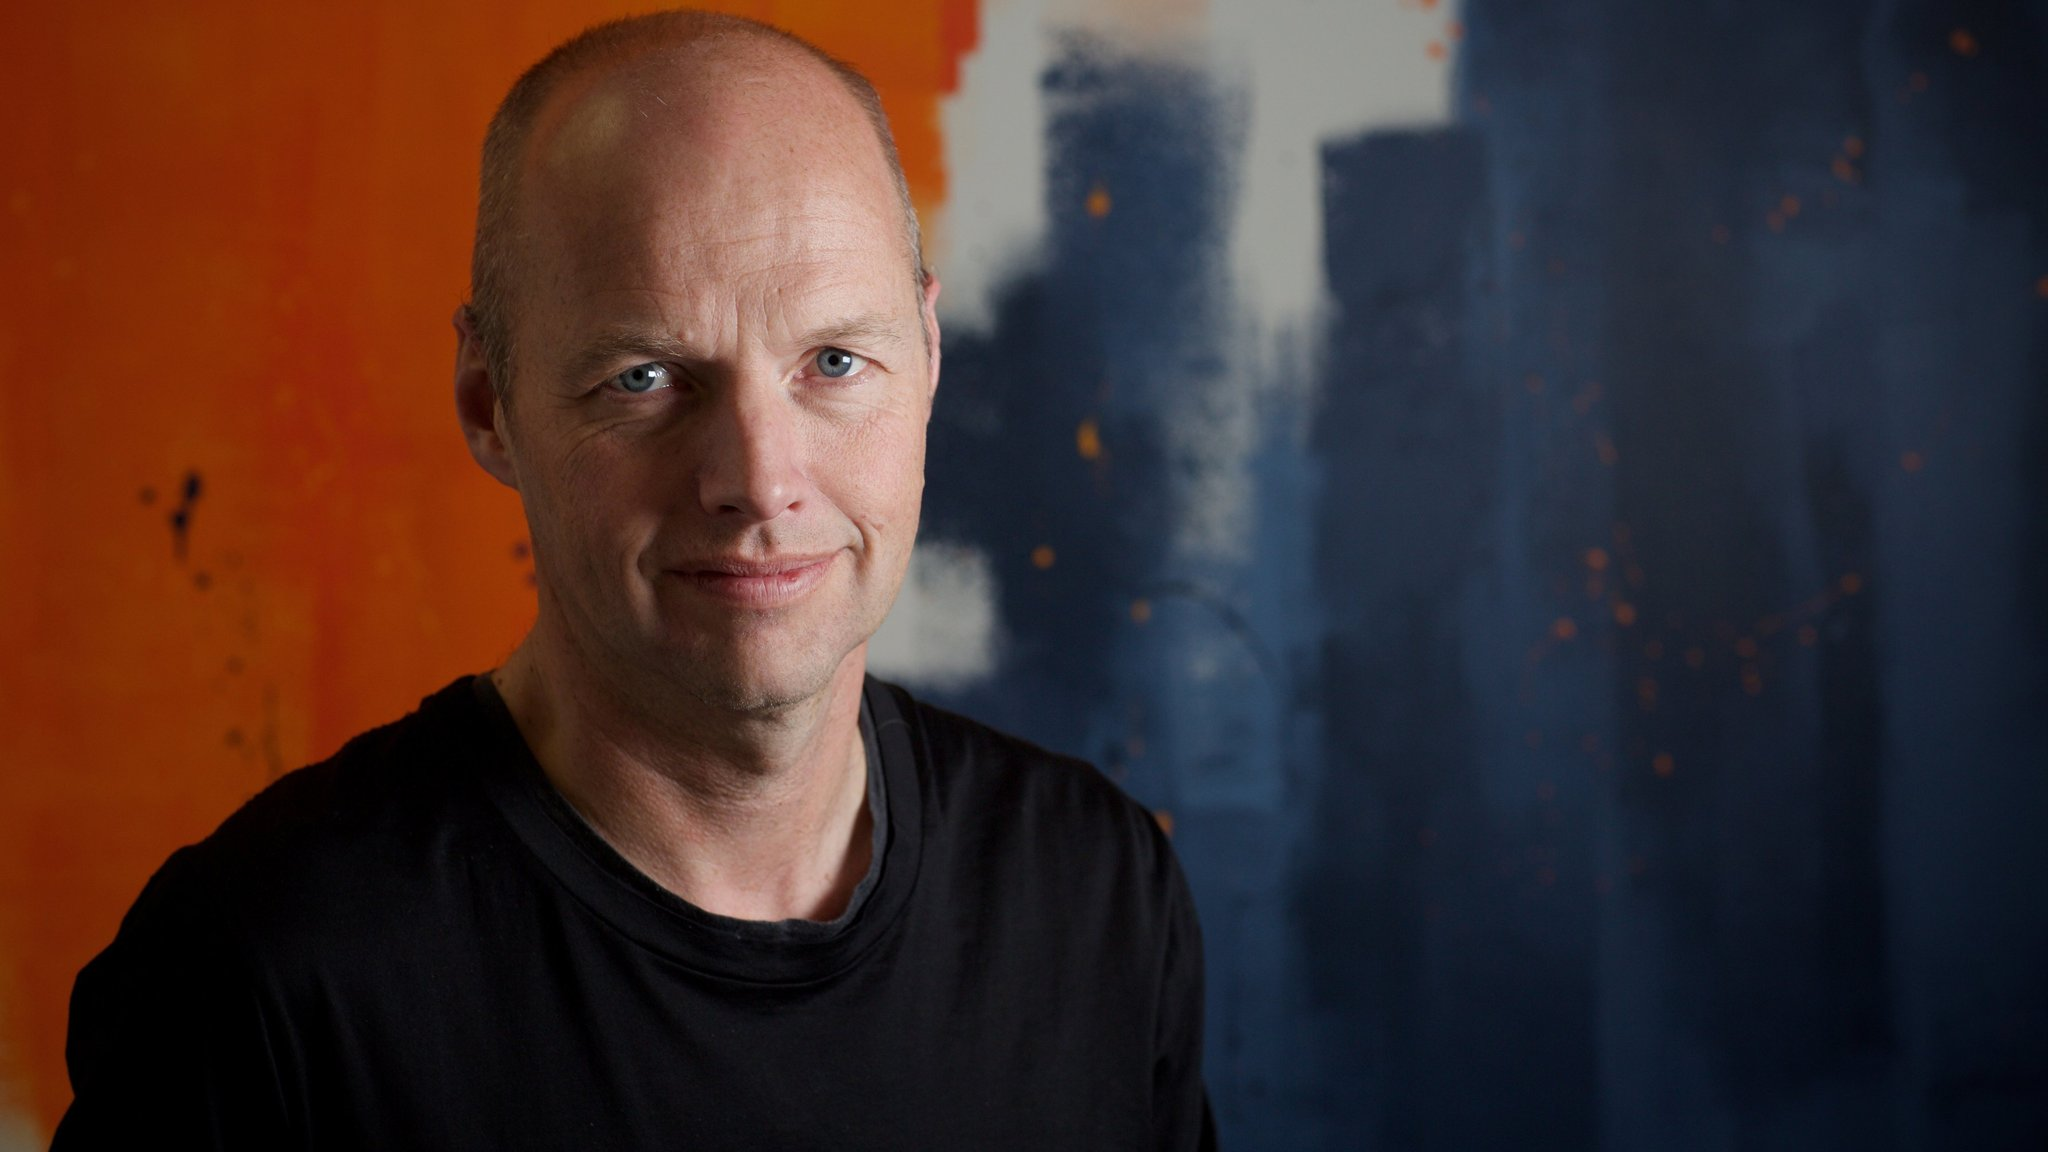 Google X disrupter Sebastian Thrun on fingernails and moonshots